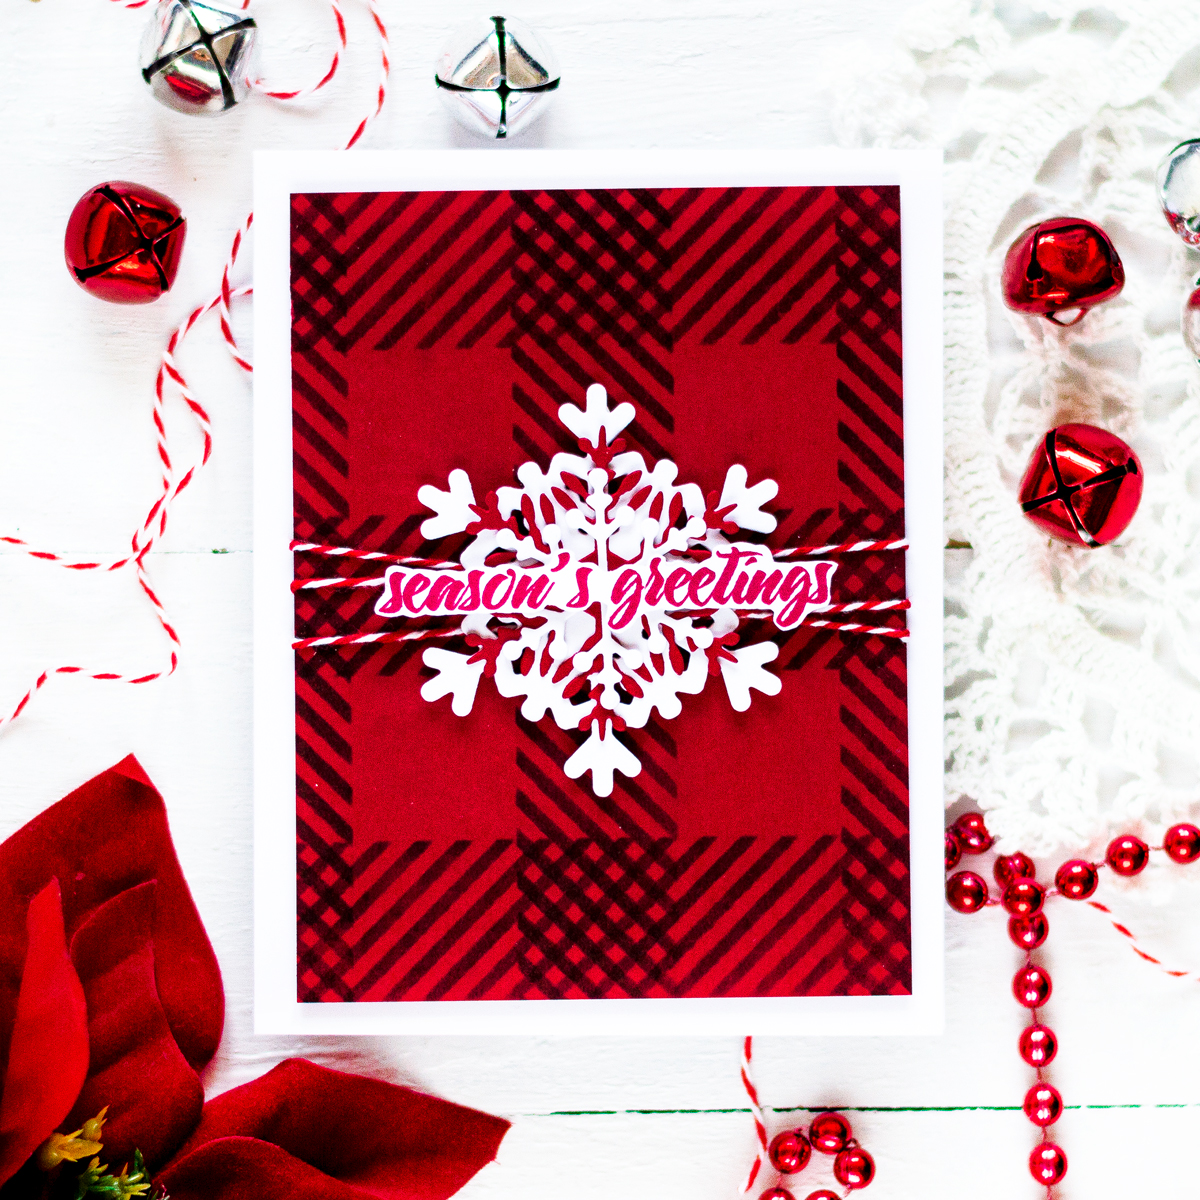 Cristmas Snowflake Card Ginhgam Background. Card by Svitlana Shayevich